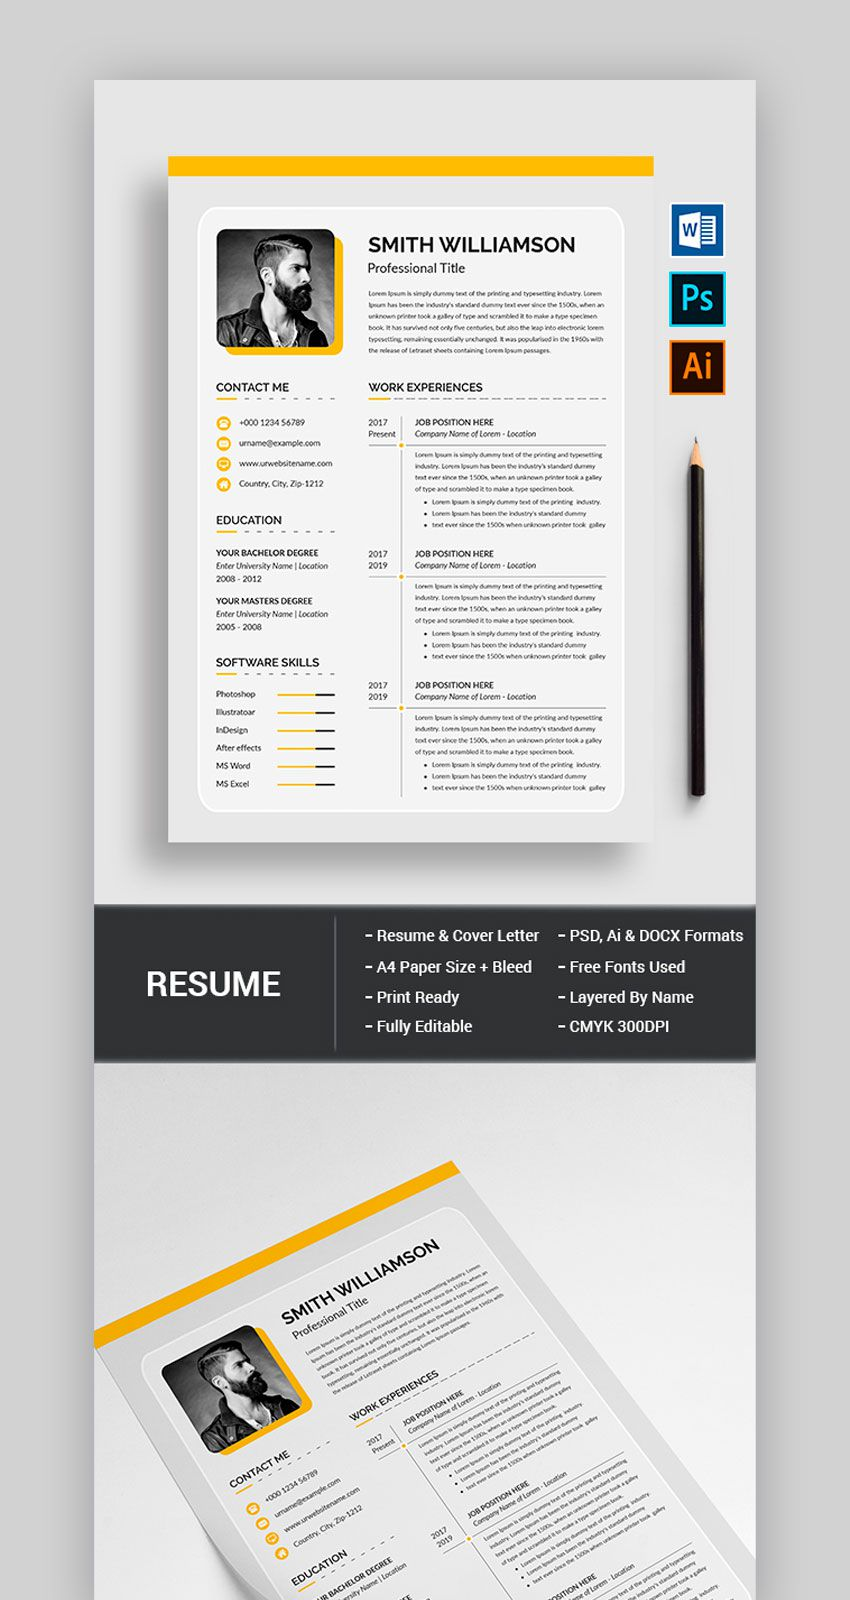 005 Archaicawful Photoshop Resume Template Free Psd Sample Full